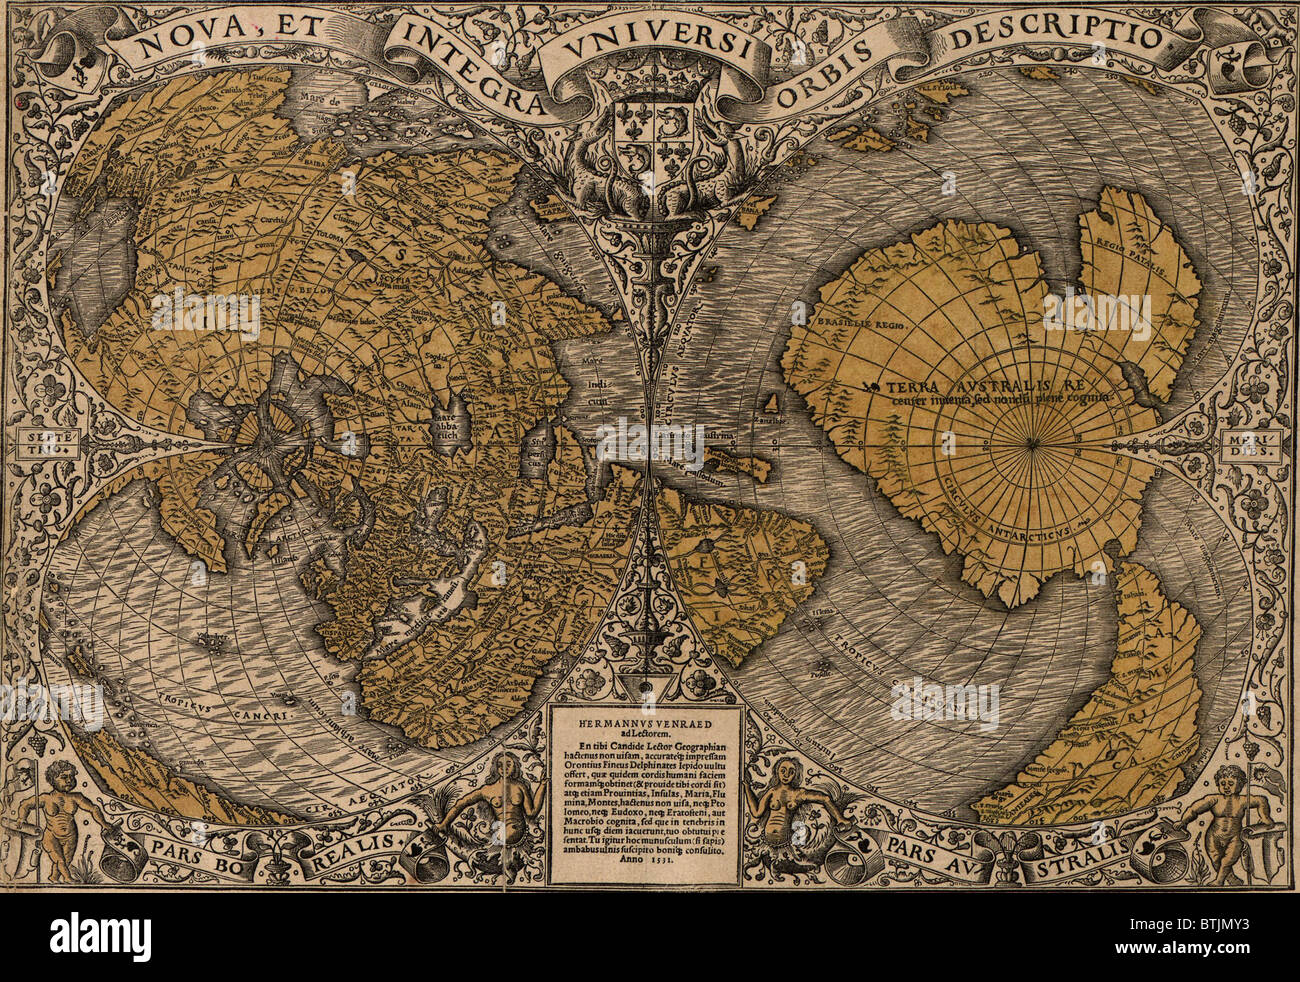 World Map Showing Hemispheres. 1531 world map showing Northern and Southern Hemispheres by Frenchman  Oronce Fine 1494 1555 The combines Ptolemaic concepts with new discoveries